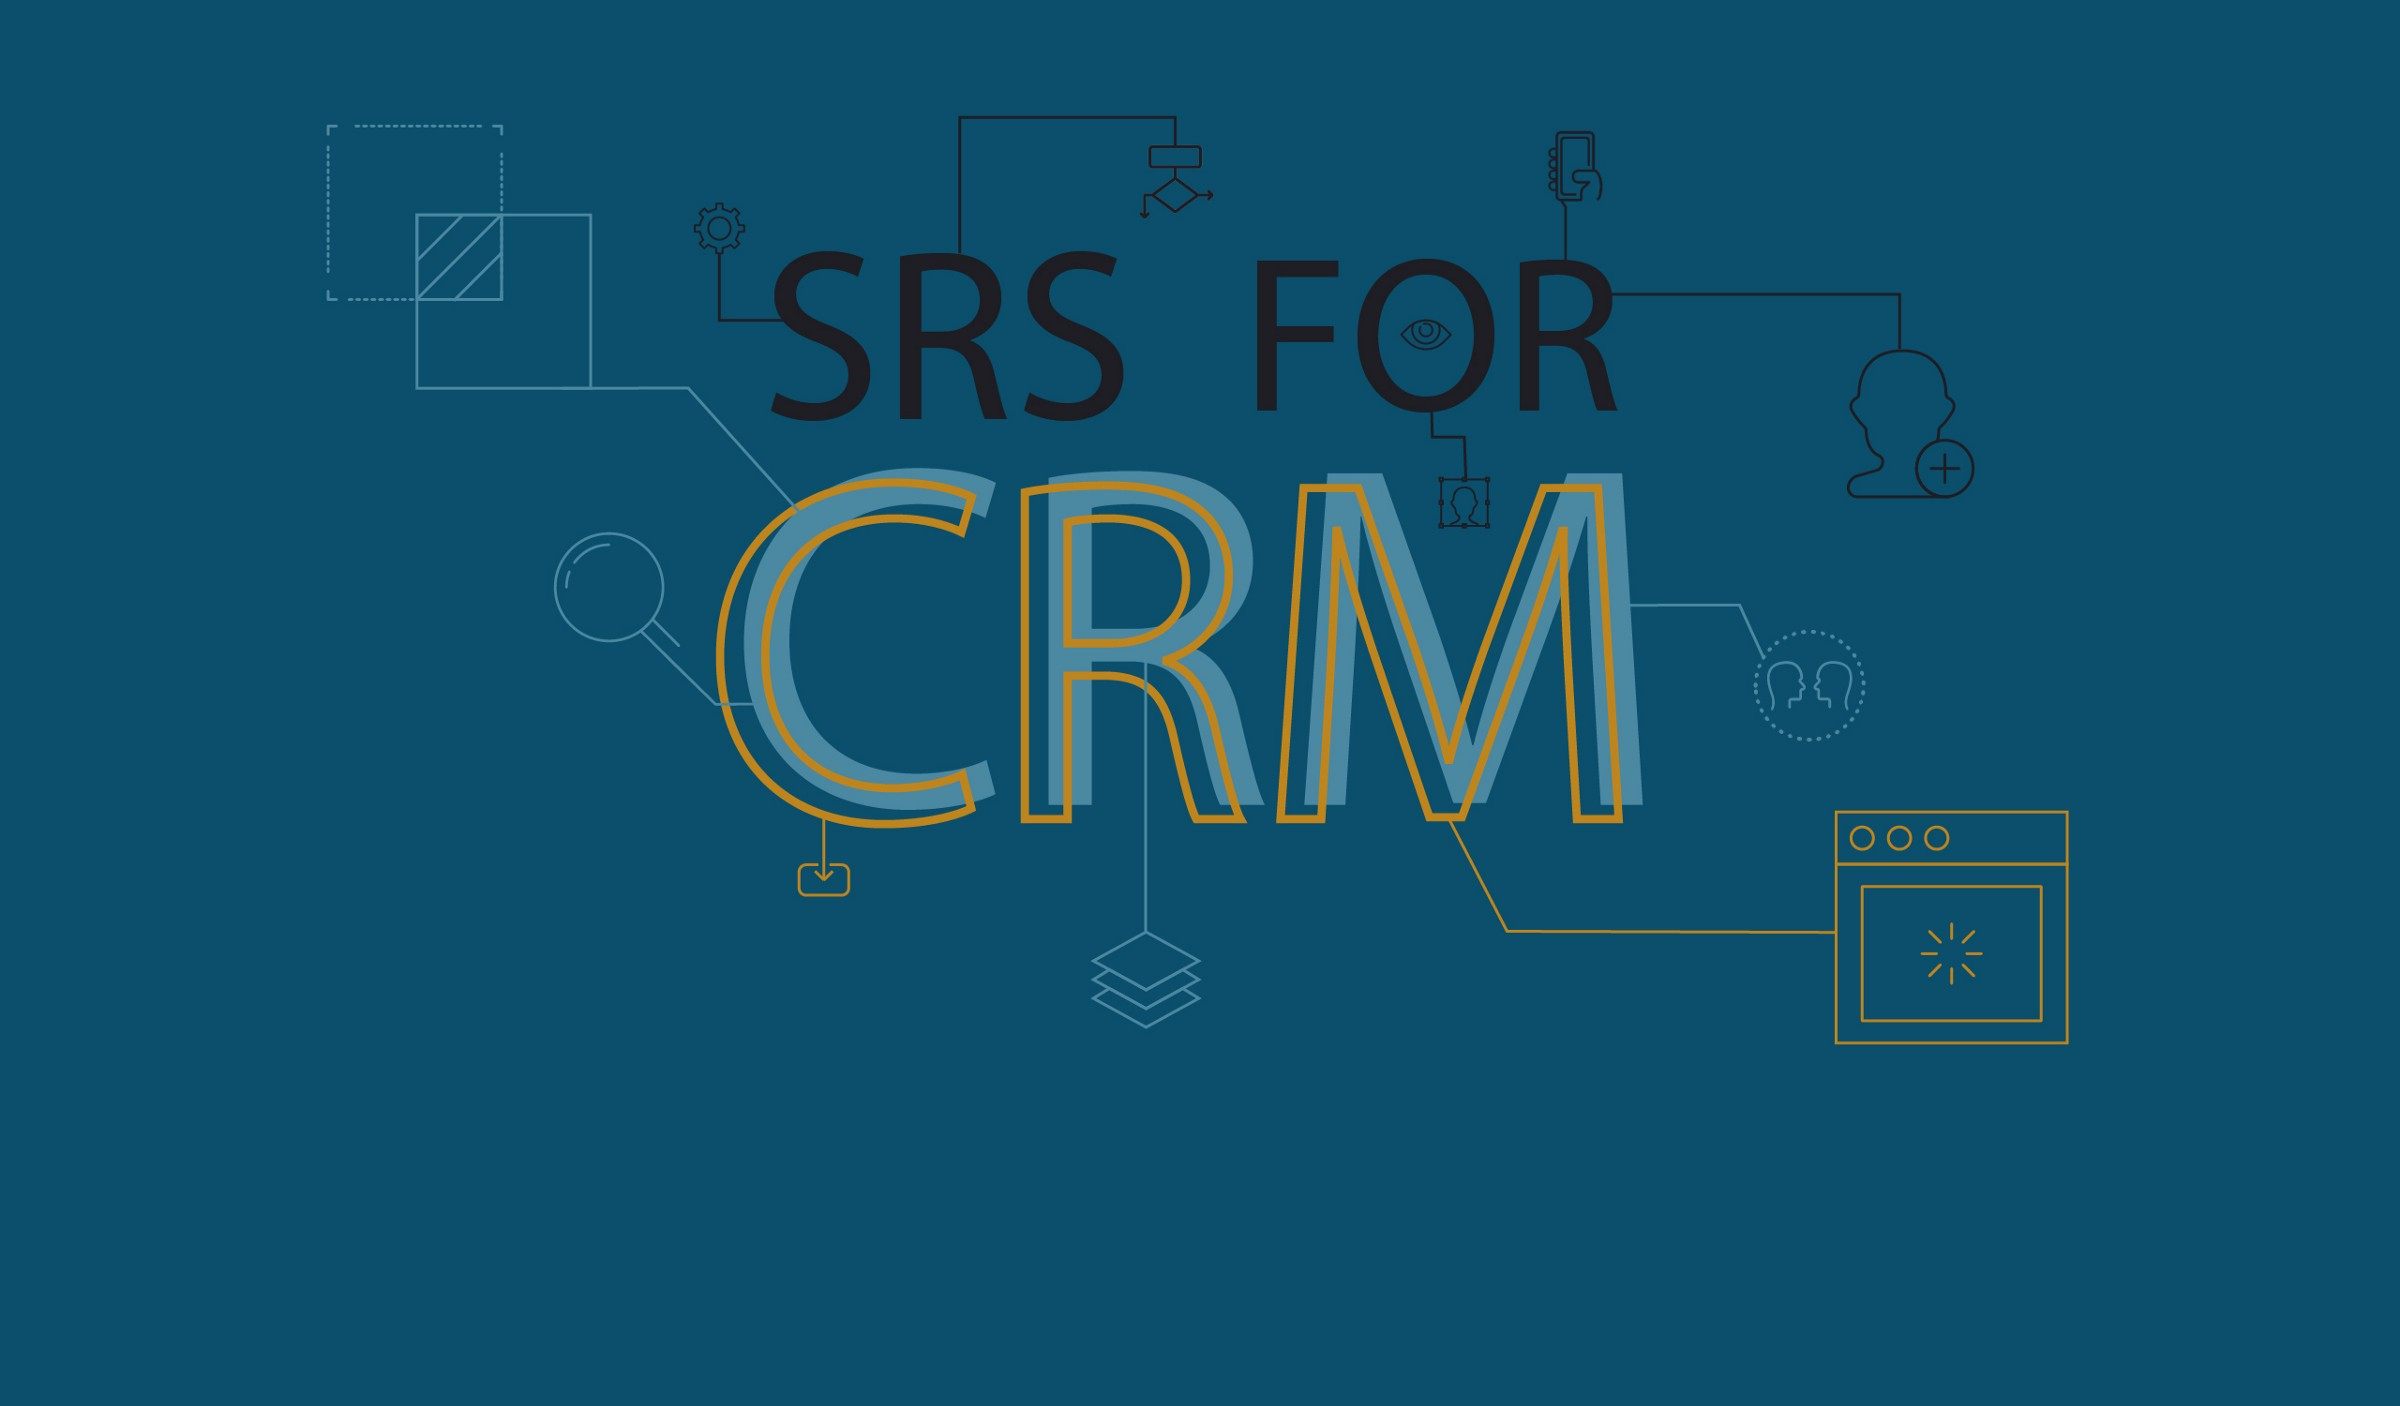 /how-to-create-an-srs-for-crm-simple-srs-template-for-a-fast-start-46543ca47f9f feature image